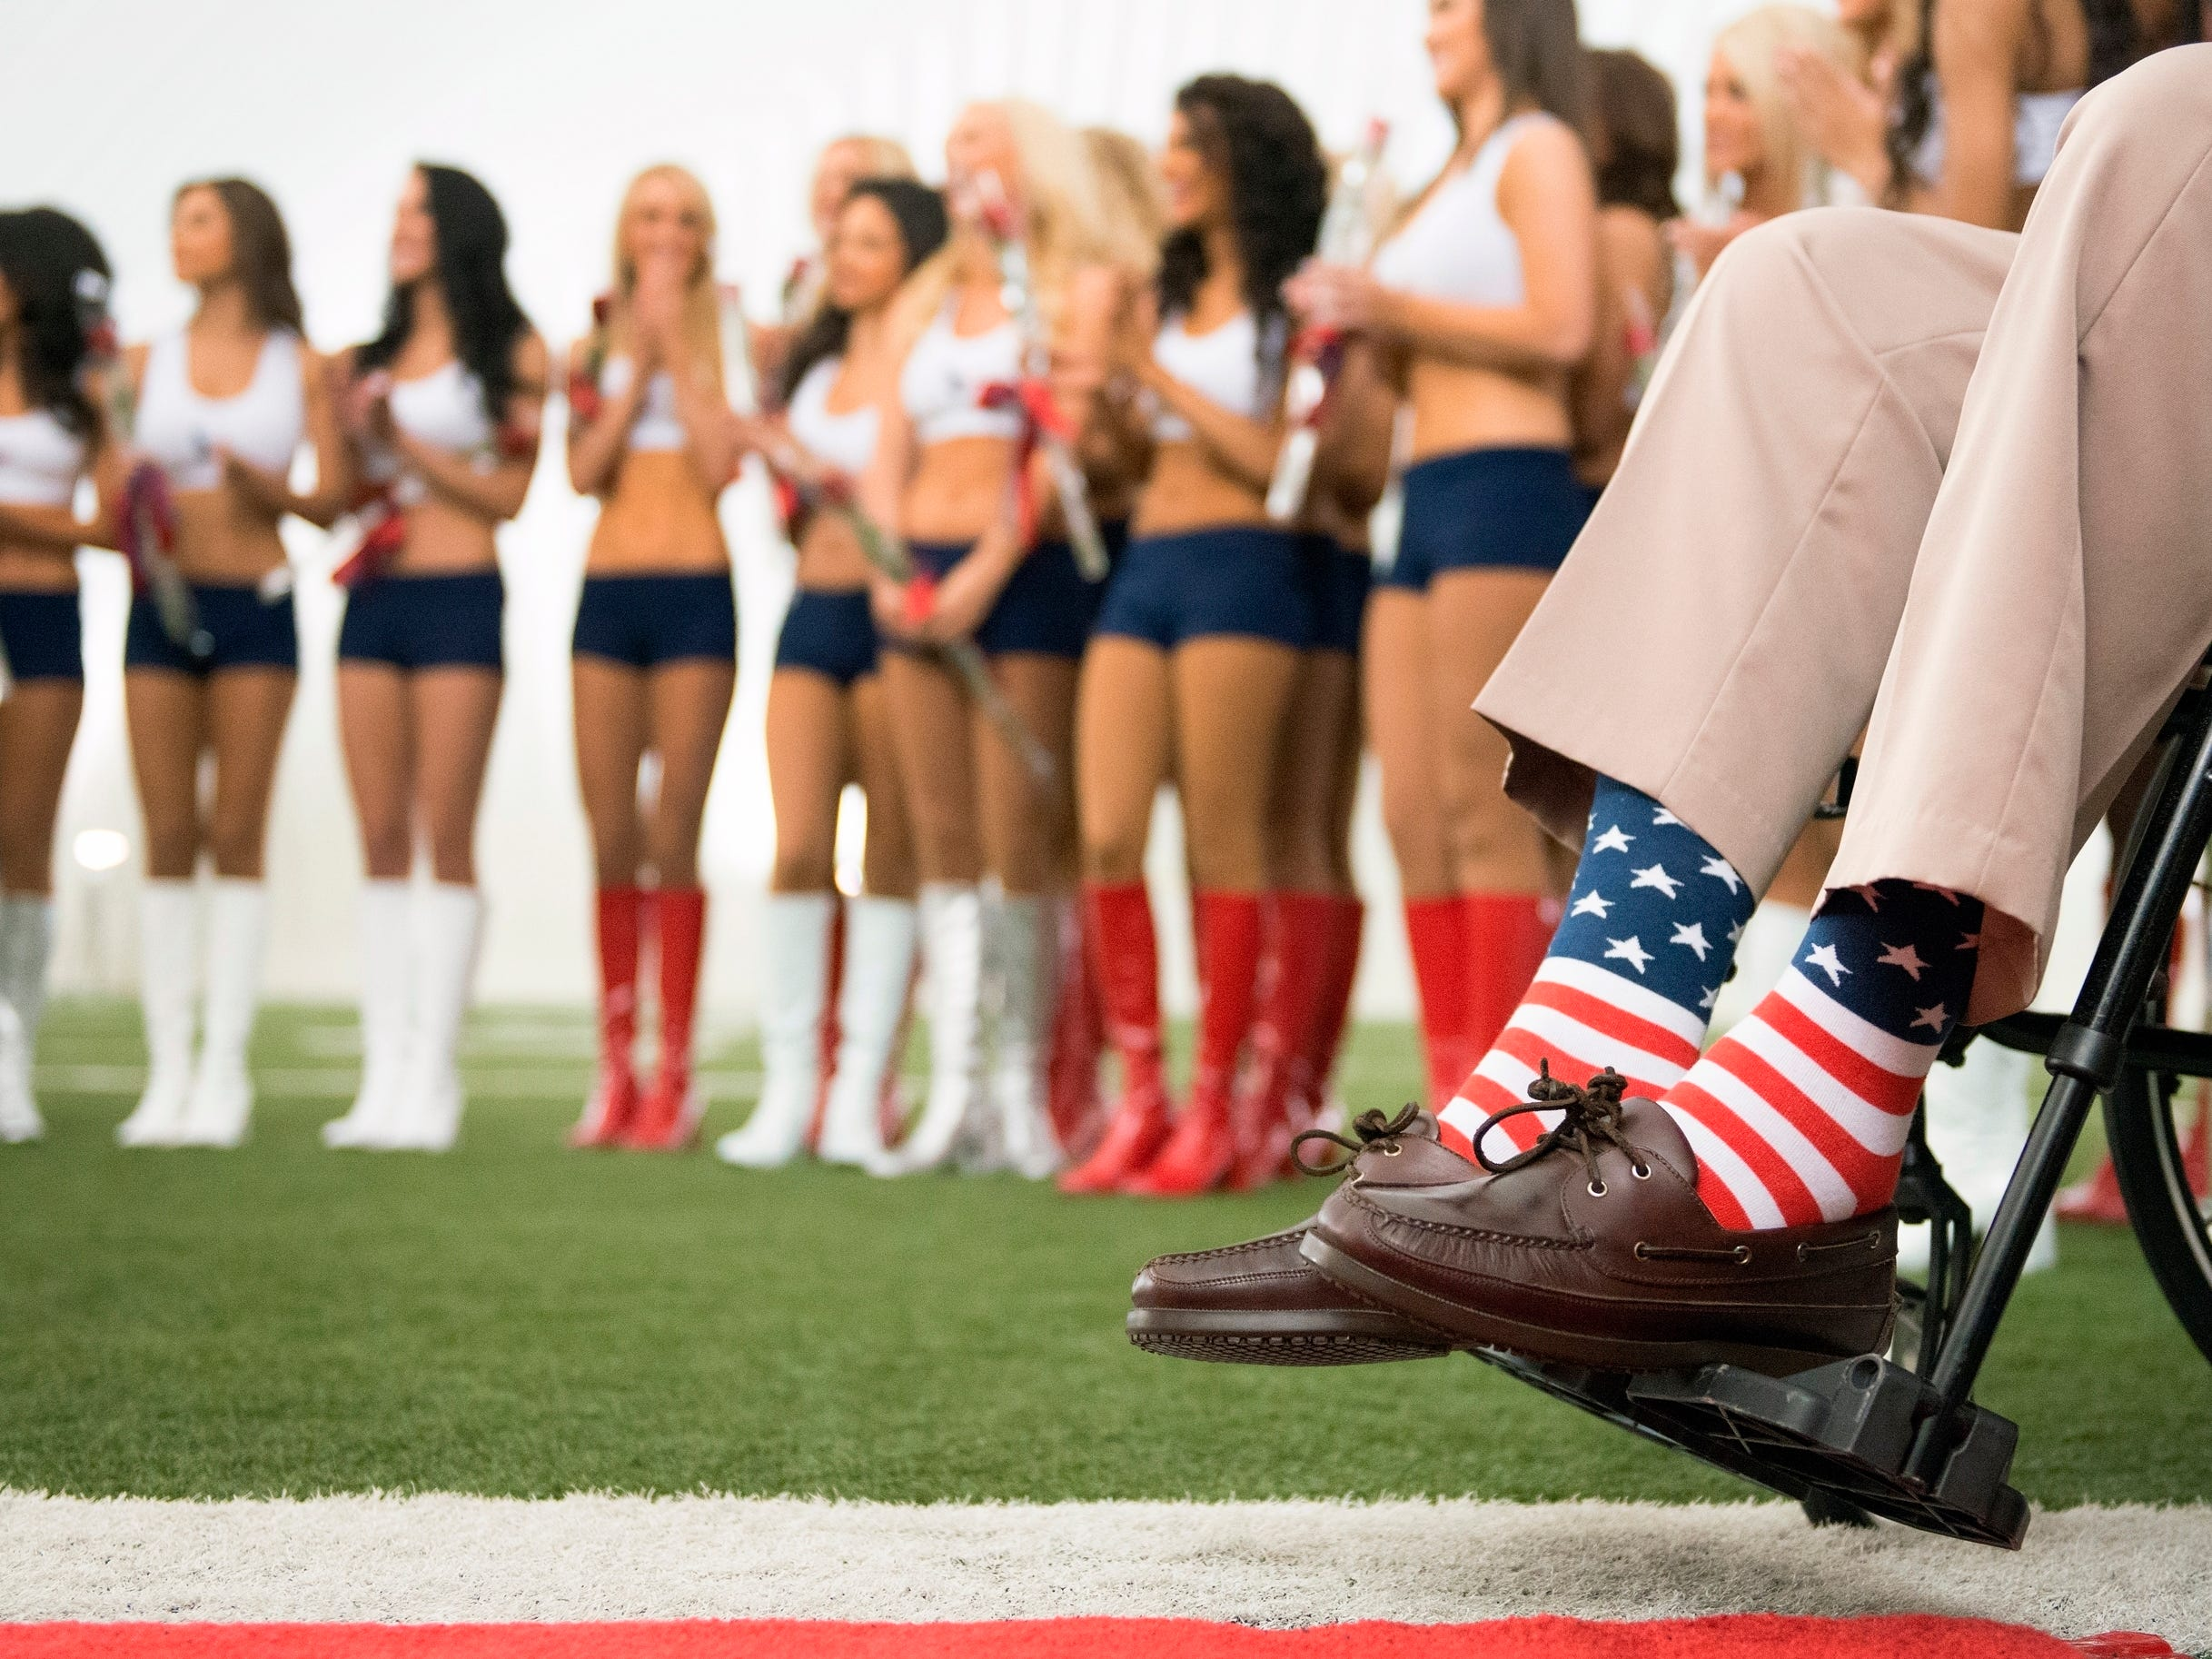 Former President George H.W. Bush wears American flag socks as he presents roses to the new Houston Texans cheerleaders during a ceremony introducing the new squad at the team's NFL football training facility in Houston on April 17, 2013. Bush often sported bright socks, sometimes with loud, unusual patterns. He died Friday, Nov. 30, 2018, in Houston at age 94. (Smiley N. Pool/Houston Chronicle via AP, File) ORG XMIT: NYAJ101